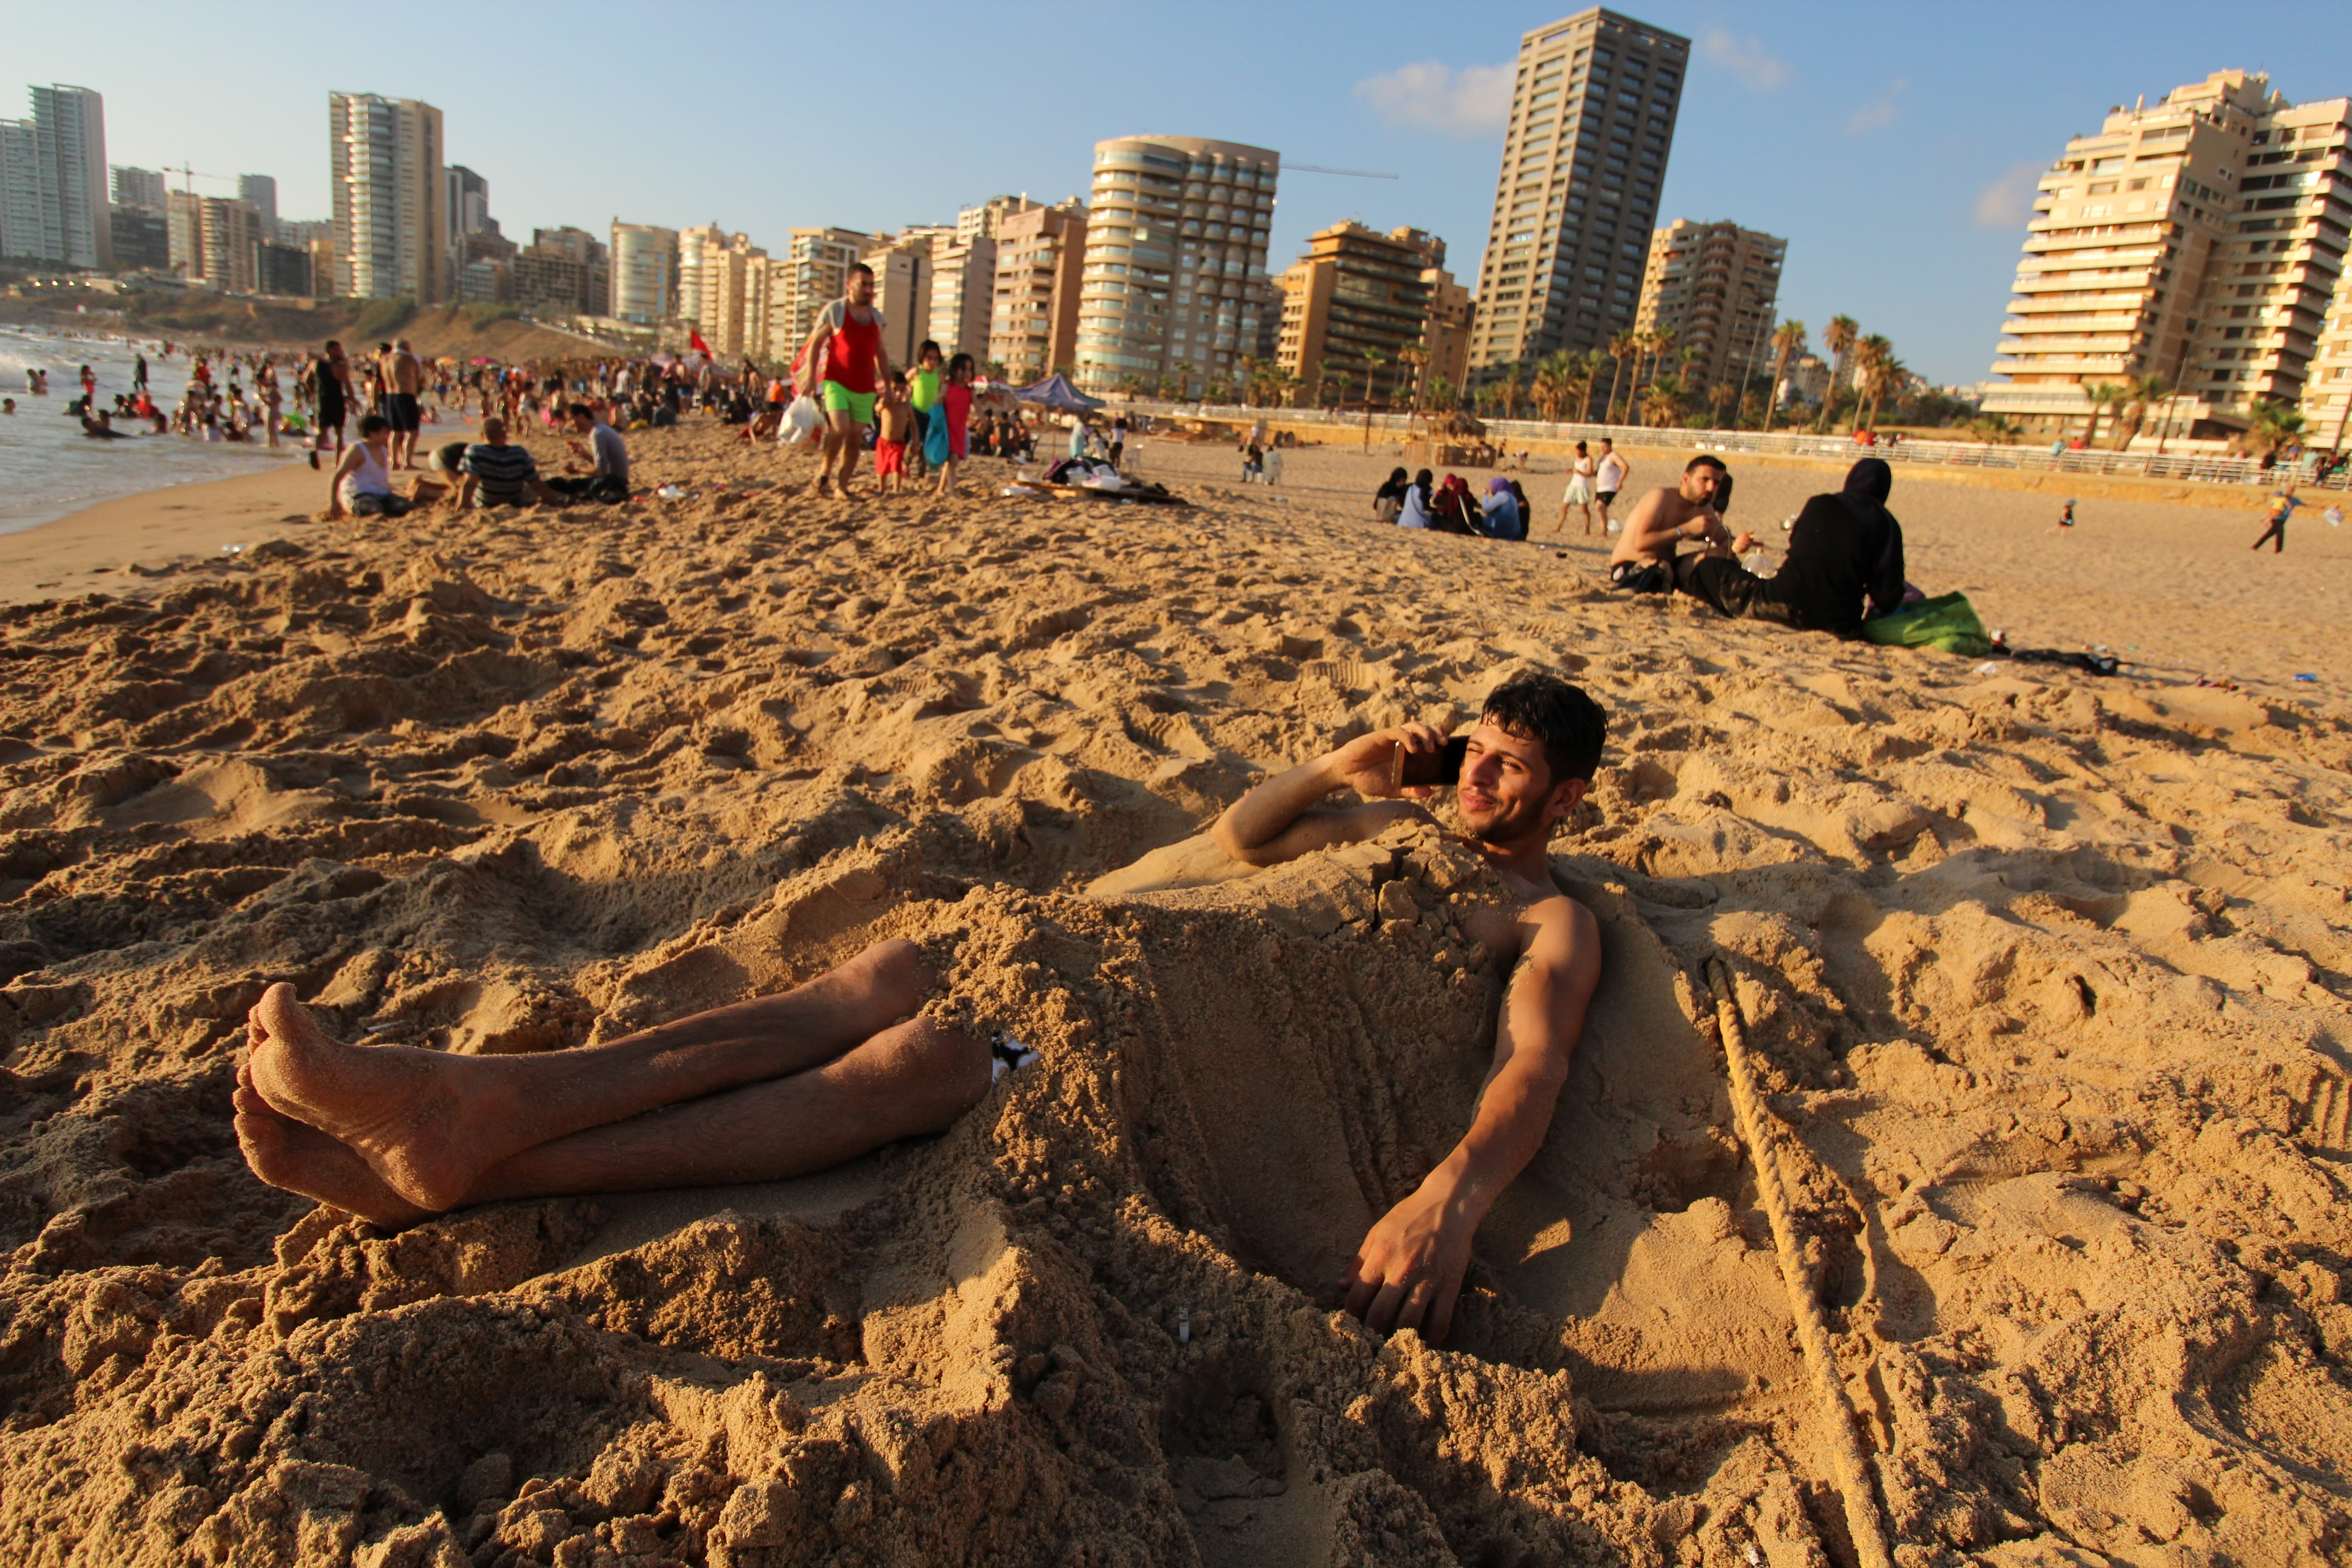 A man talks on his mobile phone while covered in sand on the beach in Beirut.